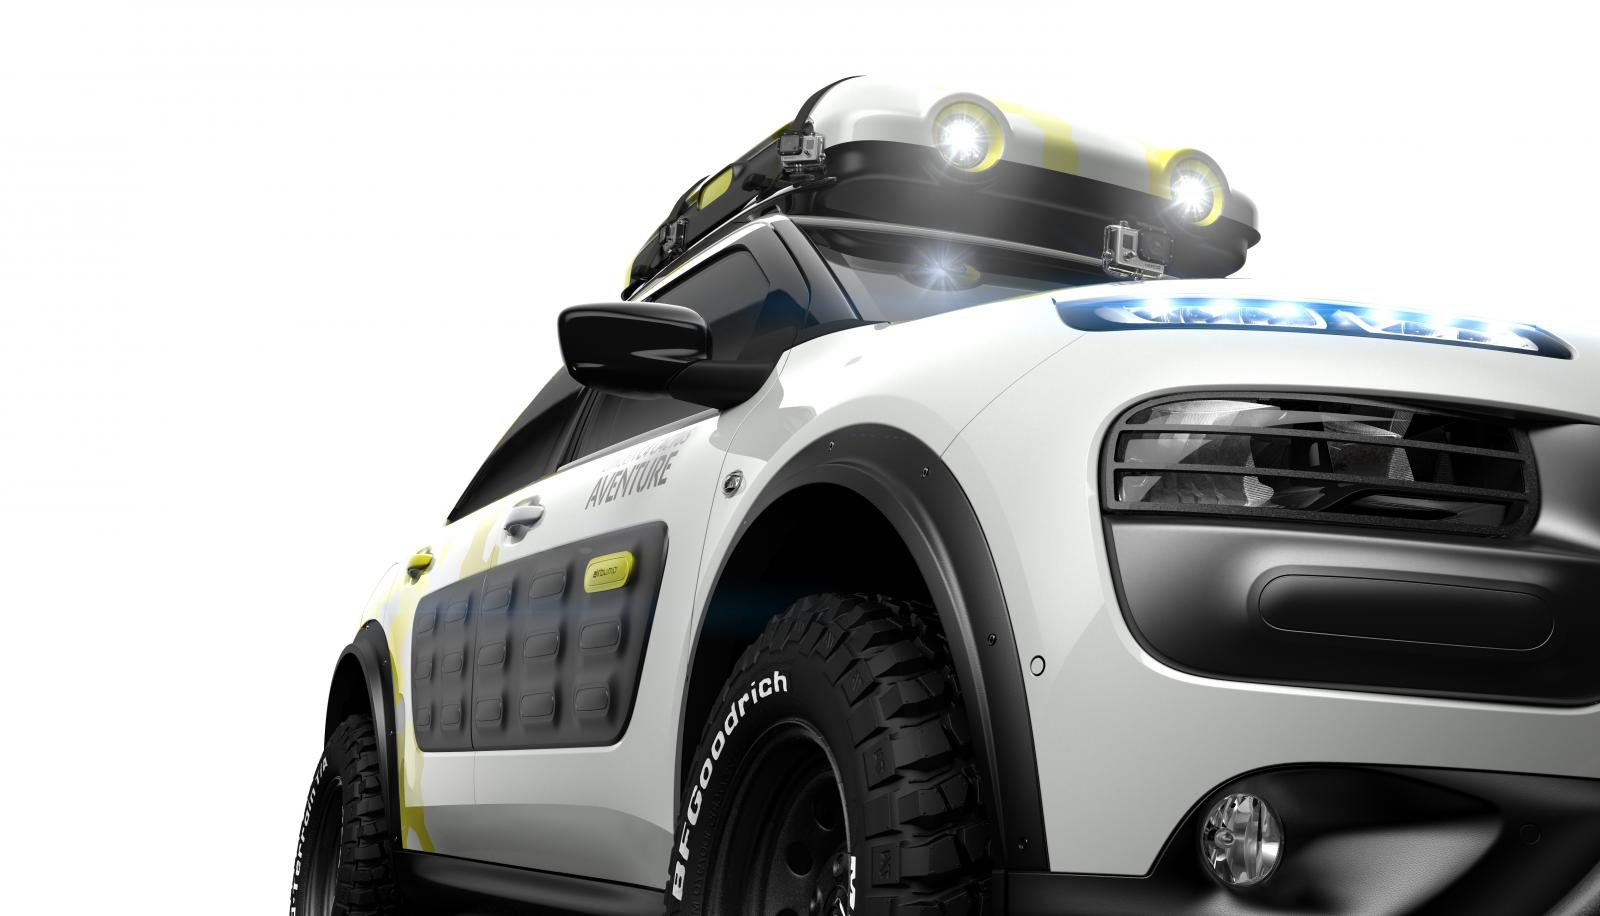 Concept-car C4 Cactus Adventure 2014 front